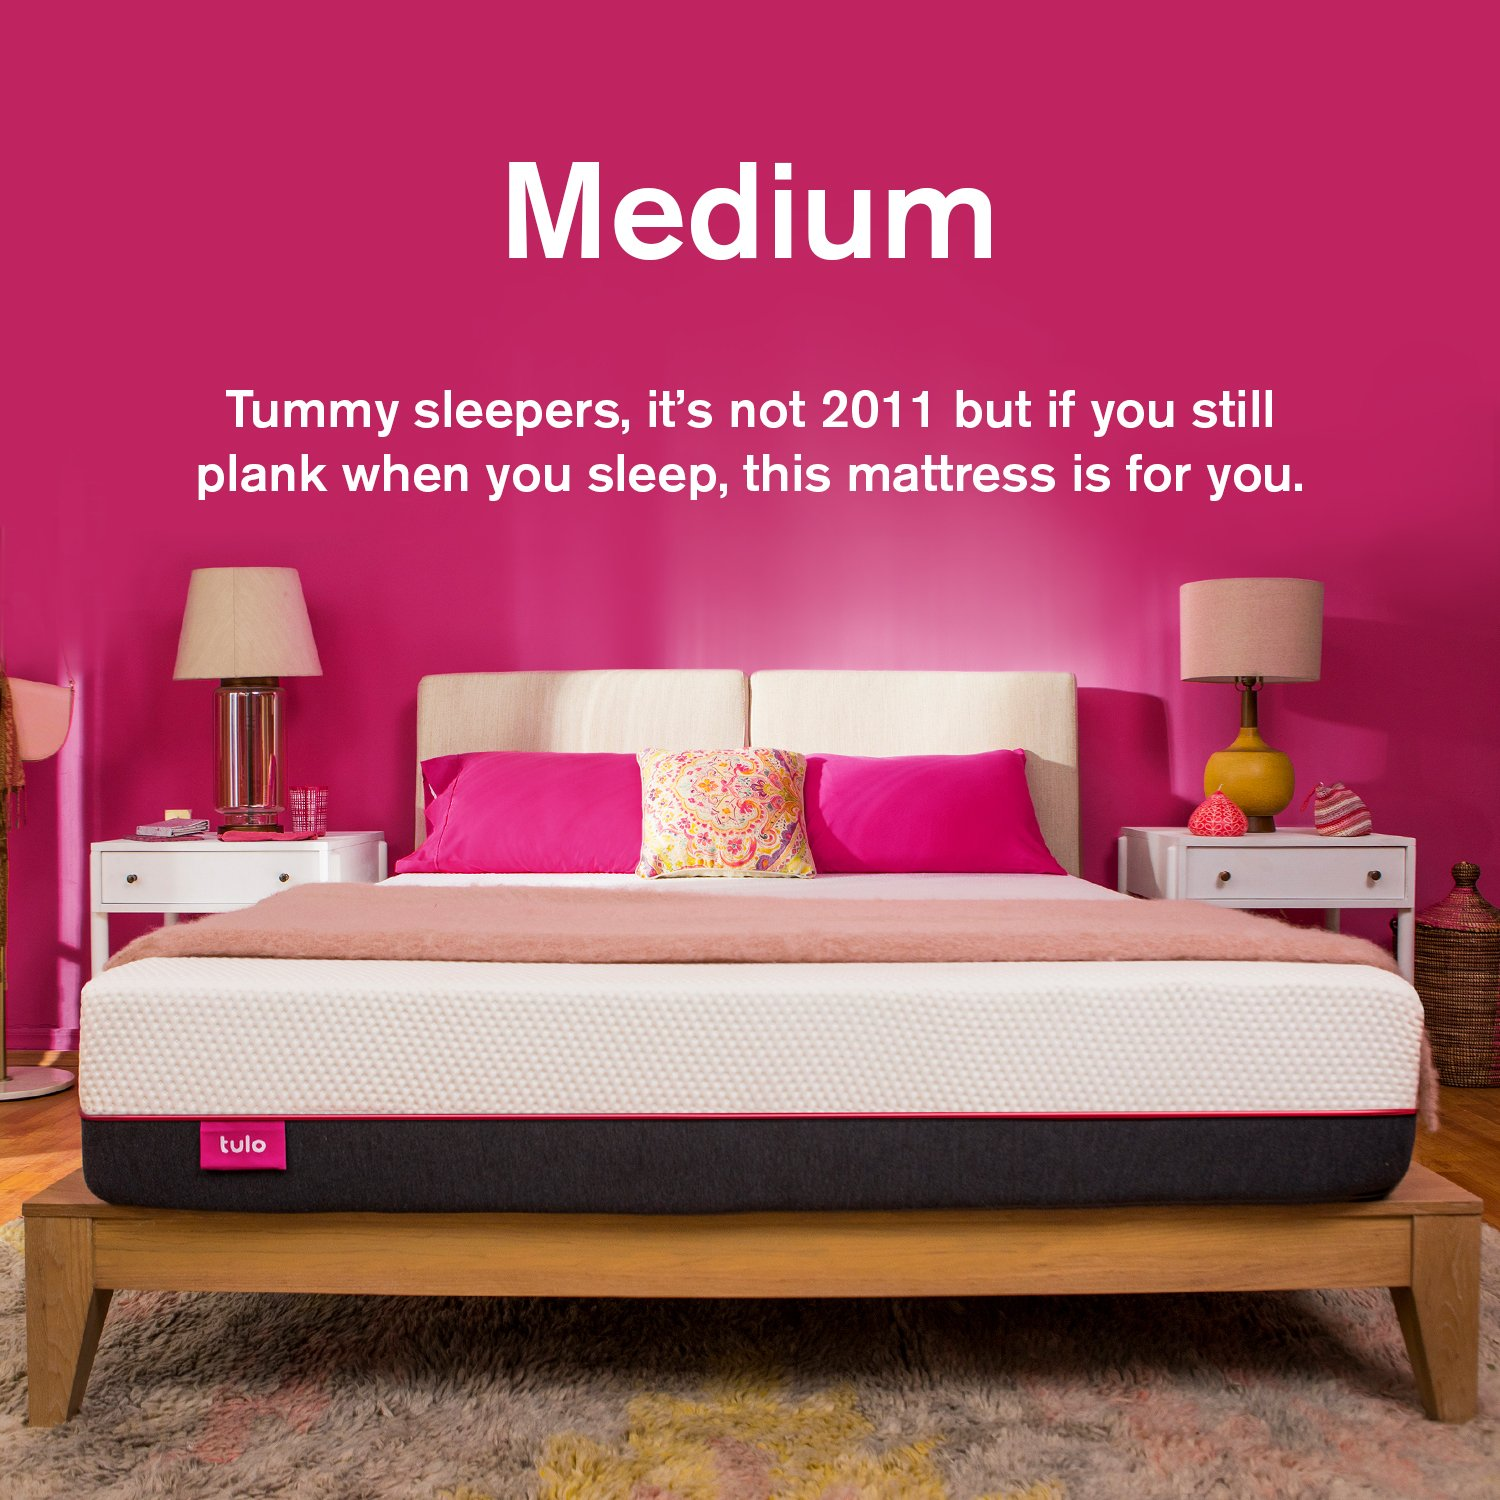 Amazon.com: Mattress by tulo, Pick your Comfort Level, Medium Queen Size 10